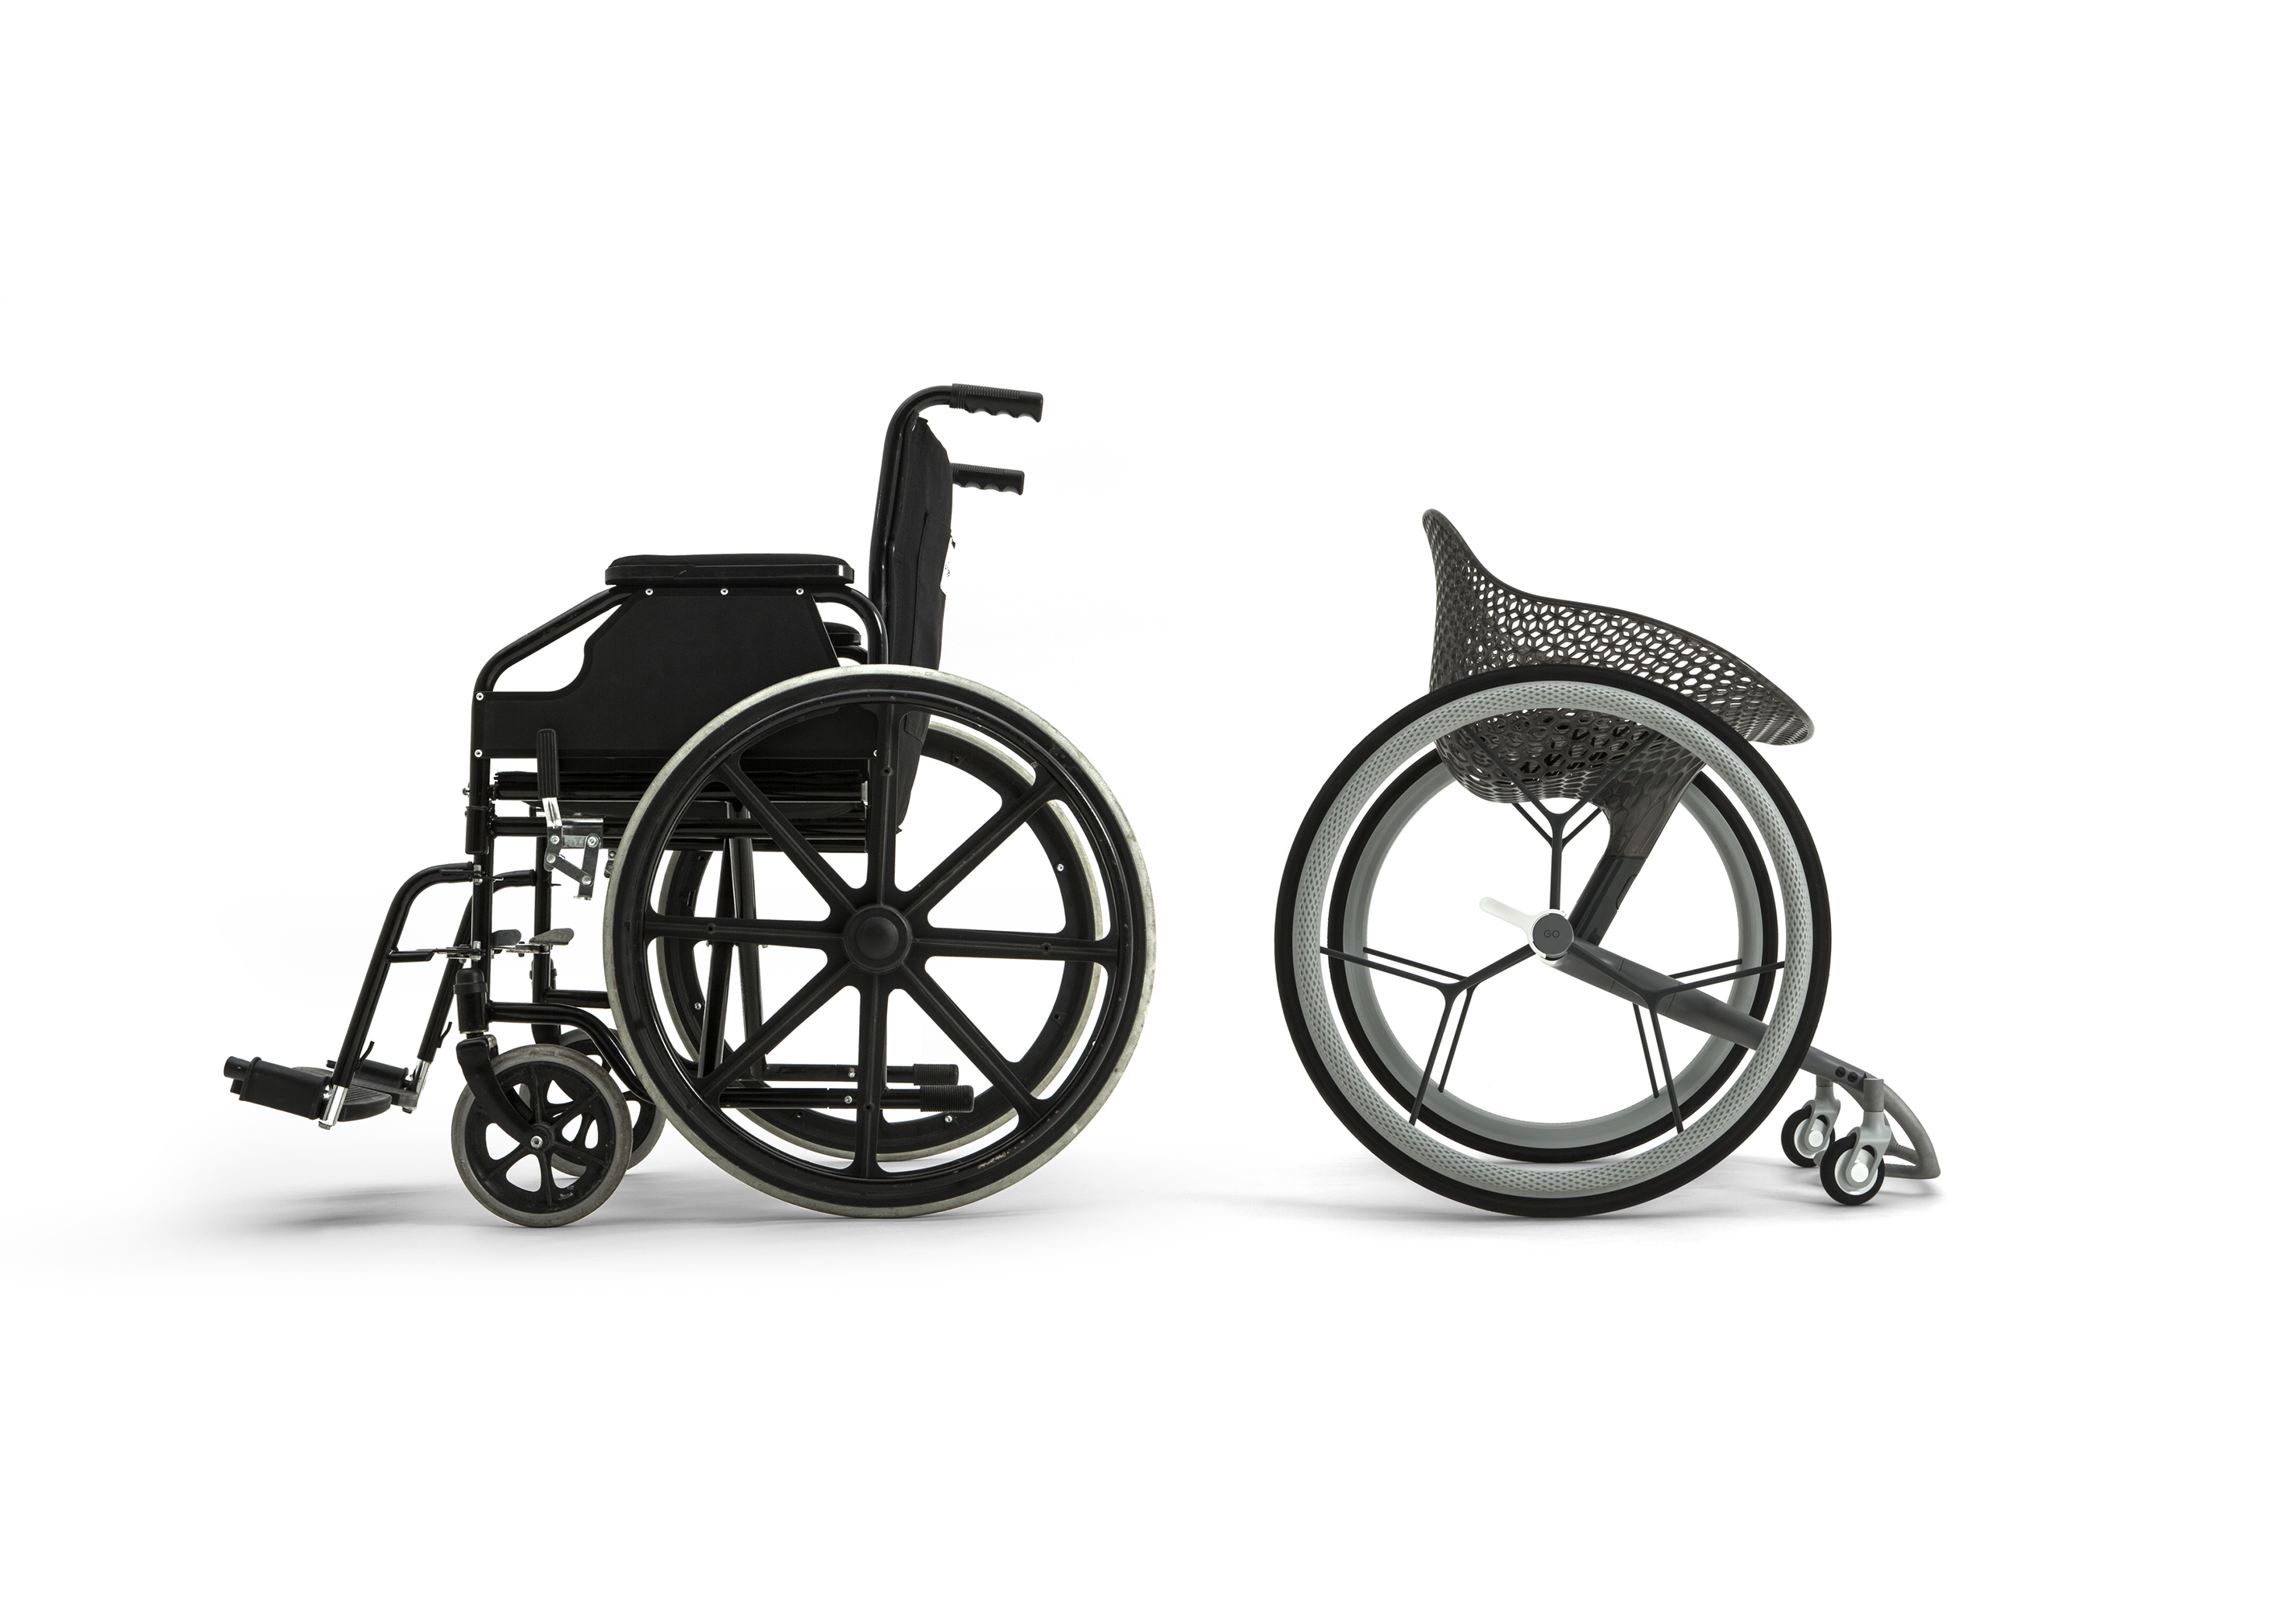 Go Wheelchair by Benjamin Hubert/Layer is a customisable seat shell that helps elderly people in reducing pressure points, and avoiding pain or injury.